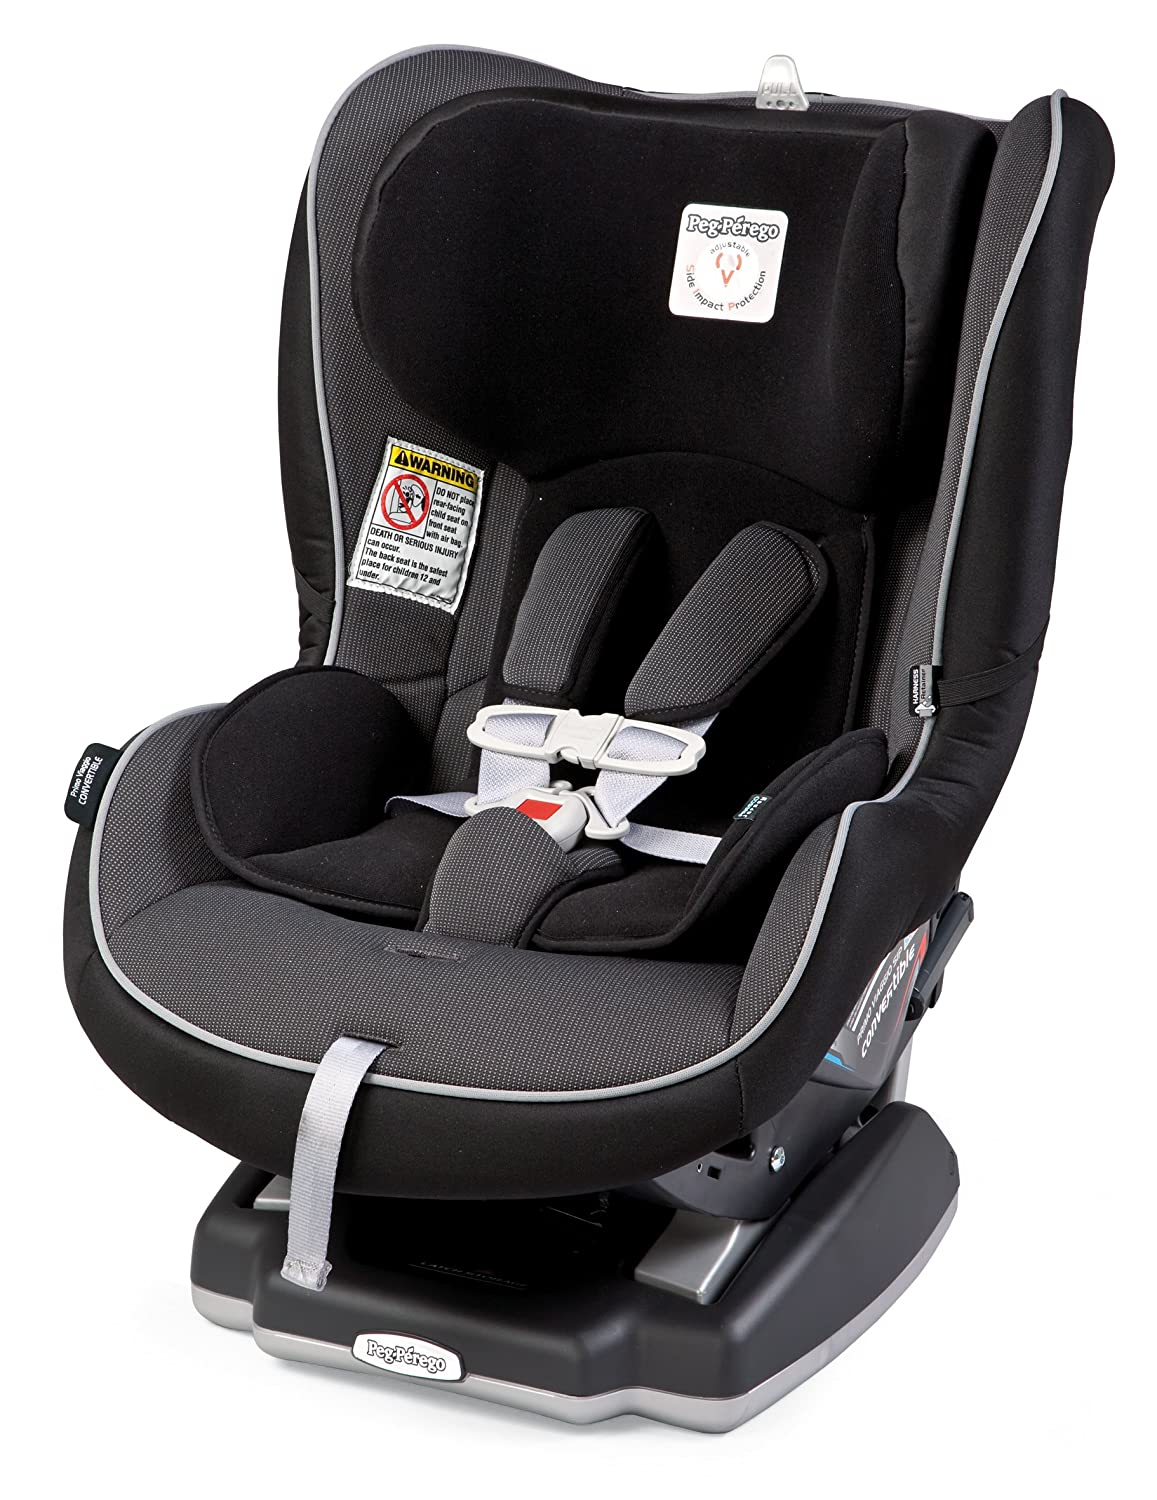 Peg Perego Primo Viaggio Convertible, Crystal Black by Peg Perego: Amazon.es: Bebé